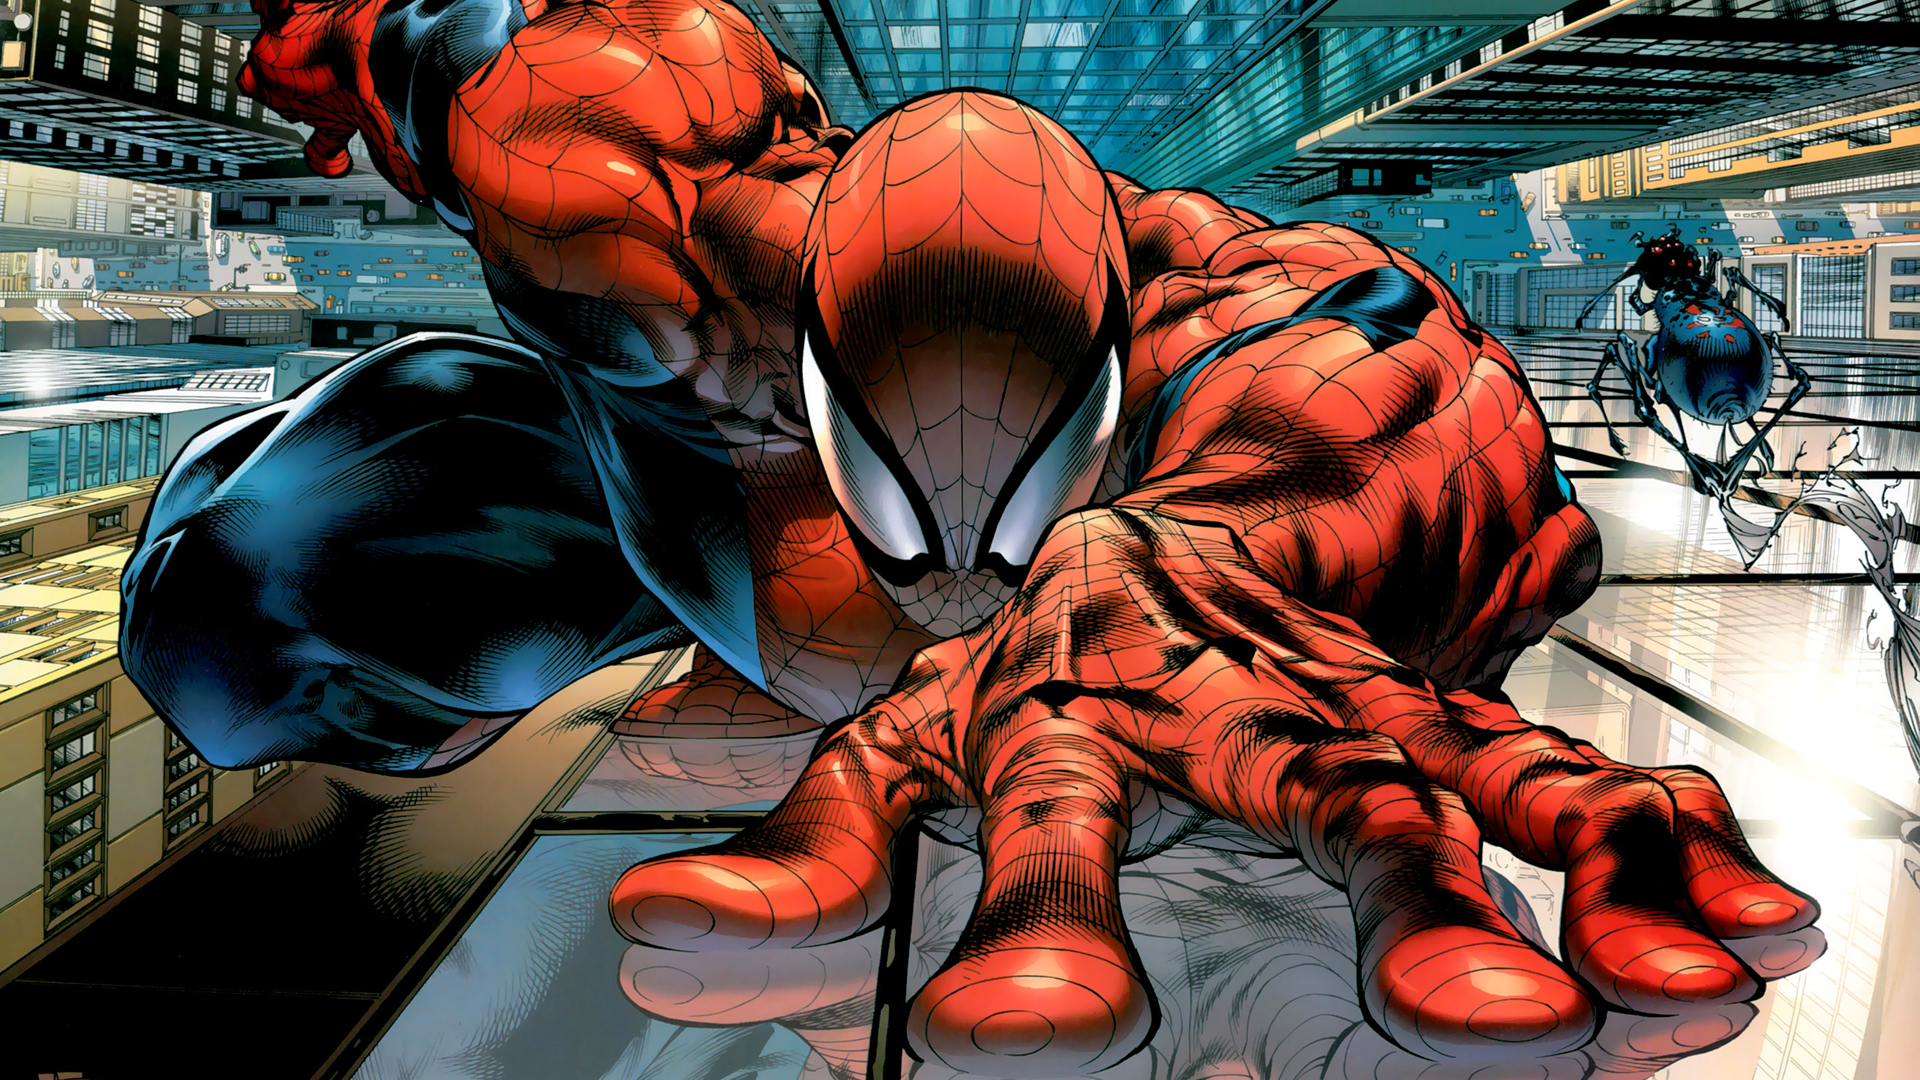 Spider Man Hd Wallpaper Background Image 1920x1080 Id 501327